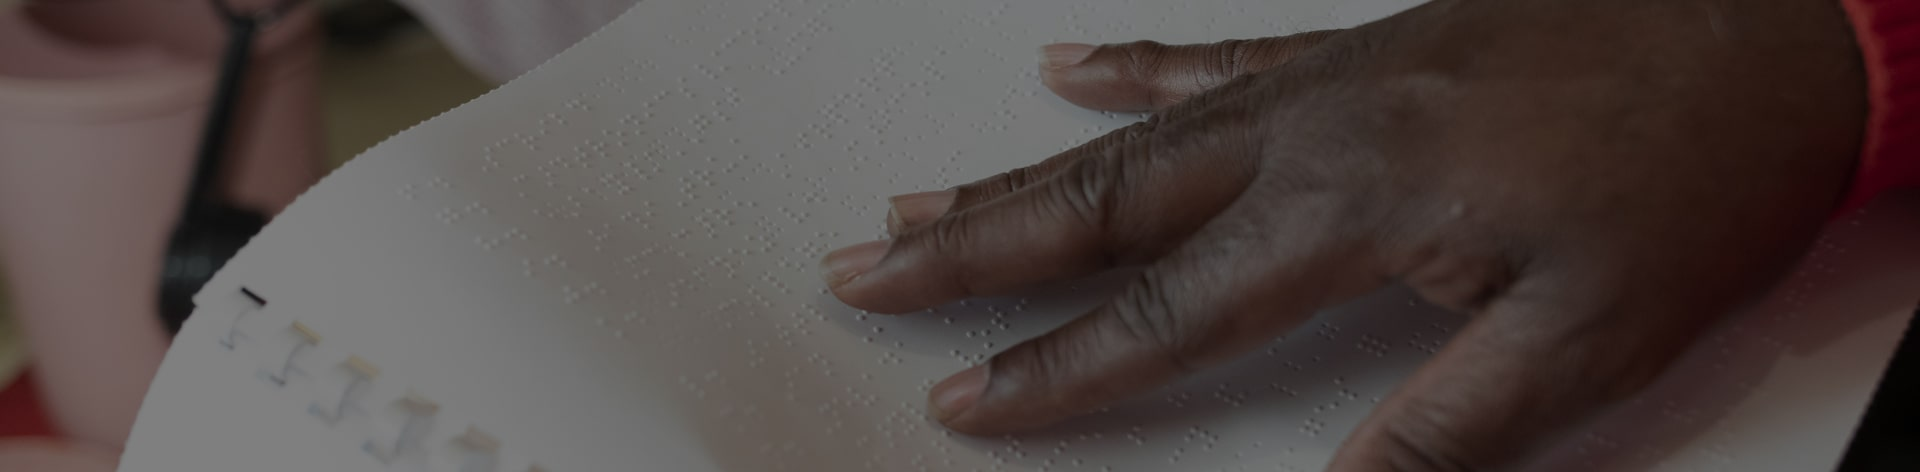 Picture of hand reading braille page.